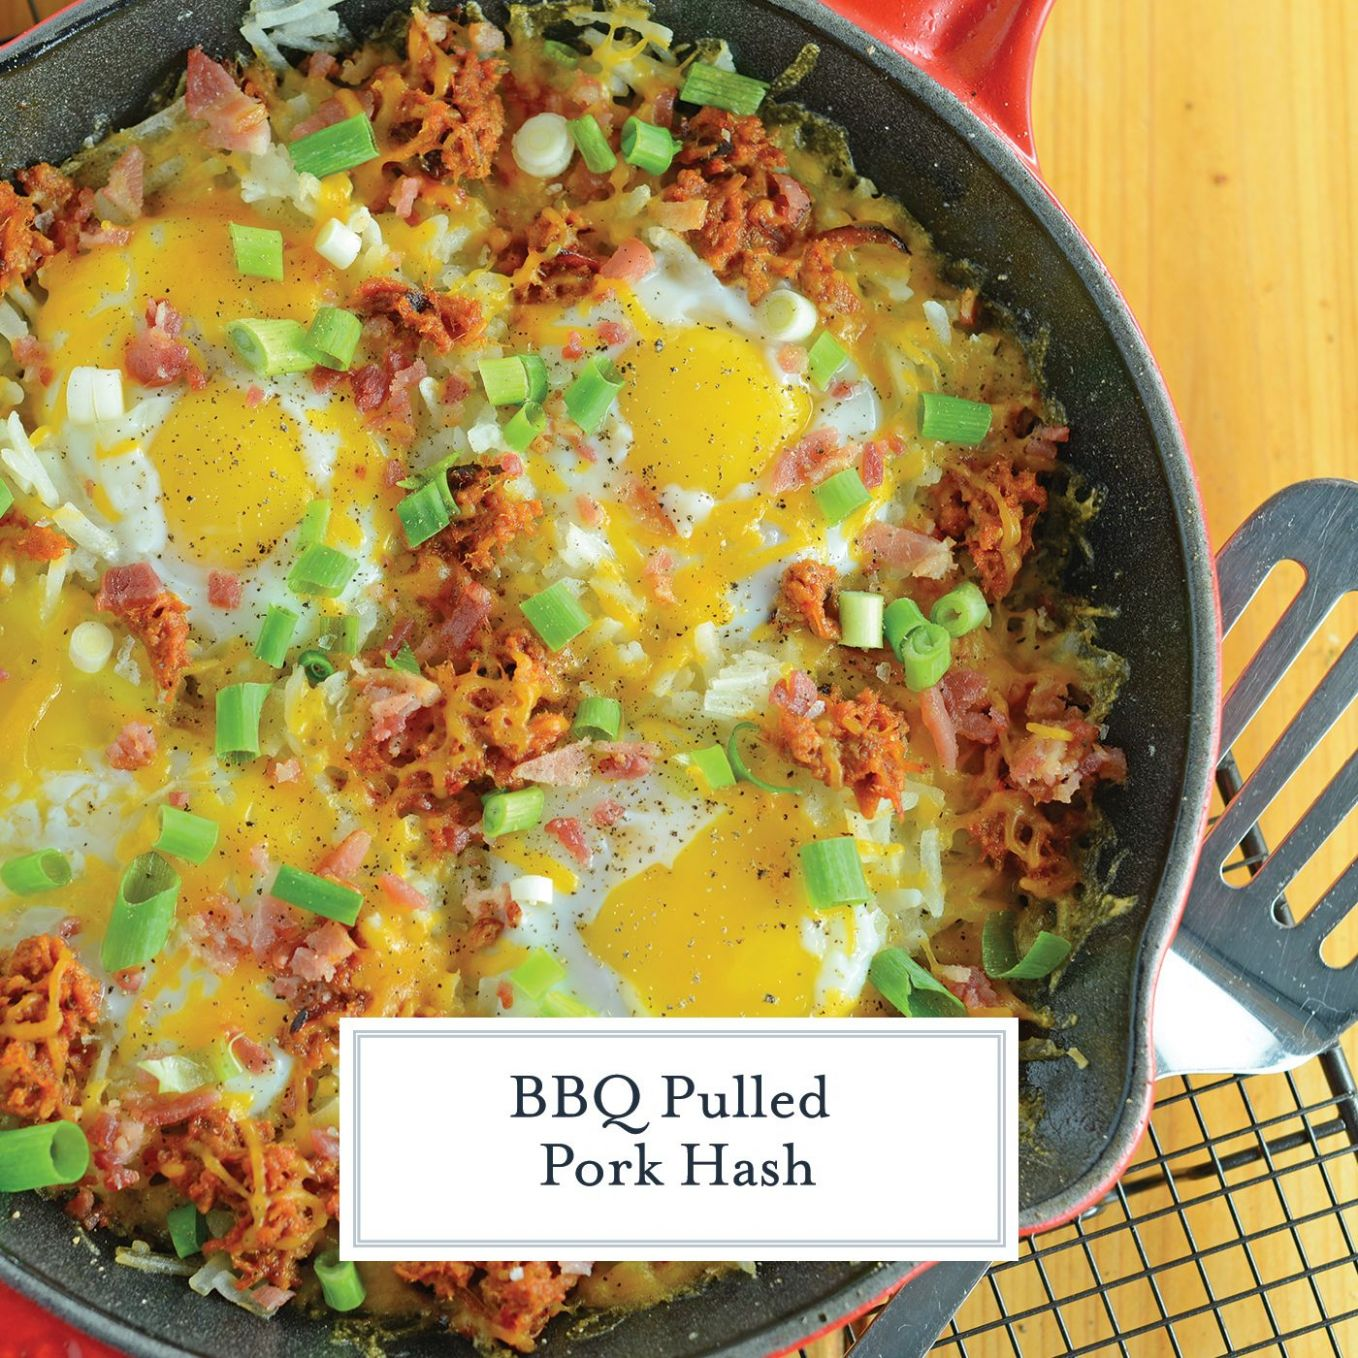 BBQ Pulled Pork Hash is my hands down, favorite Sunday brunch ..